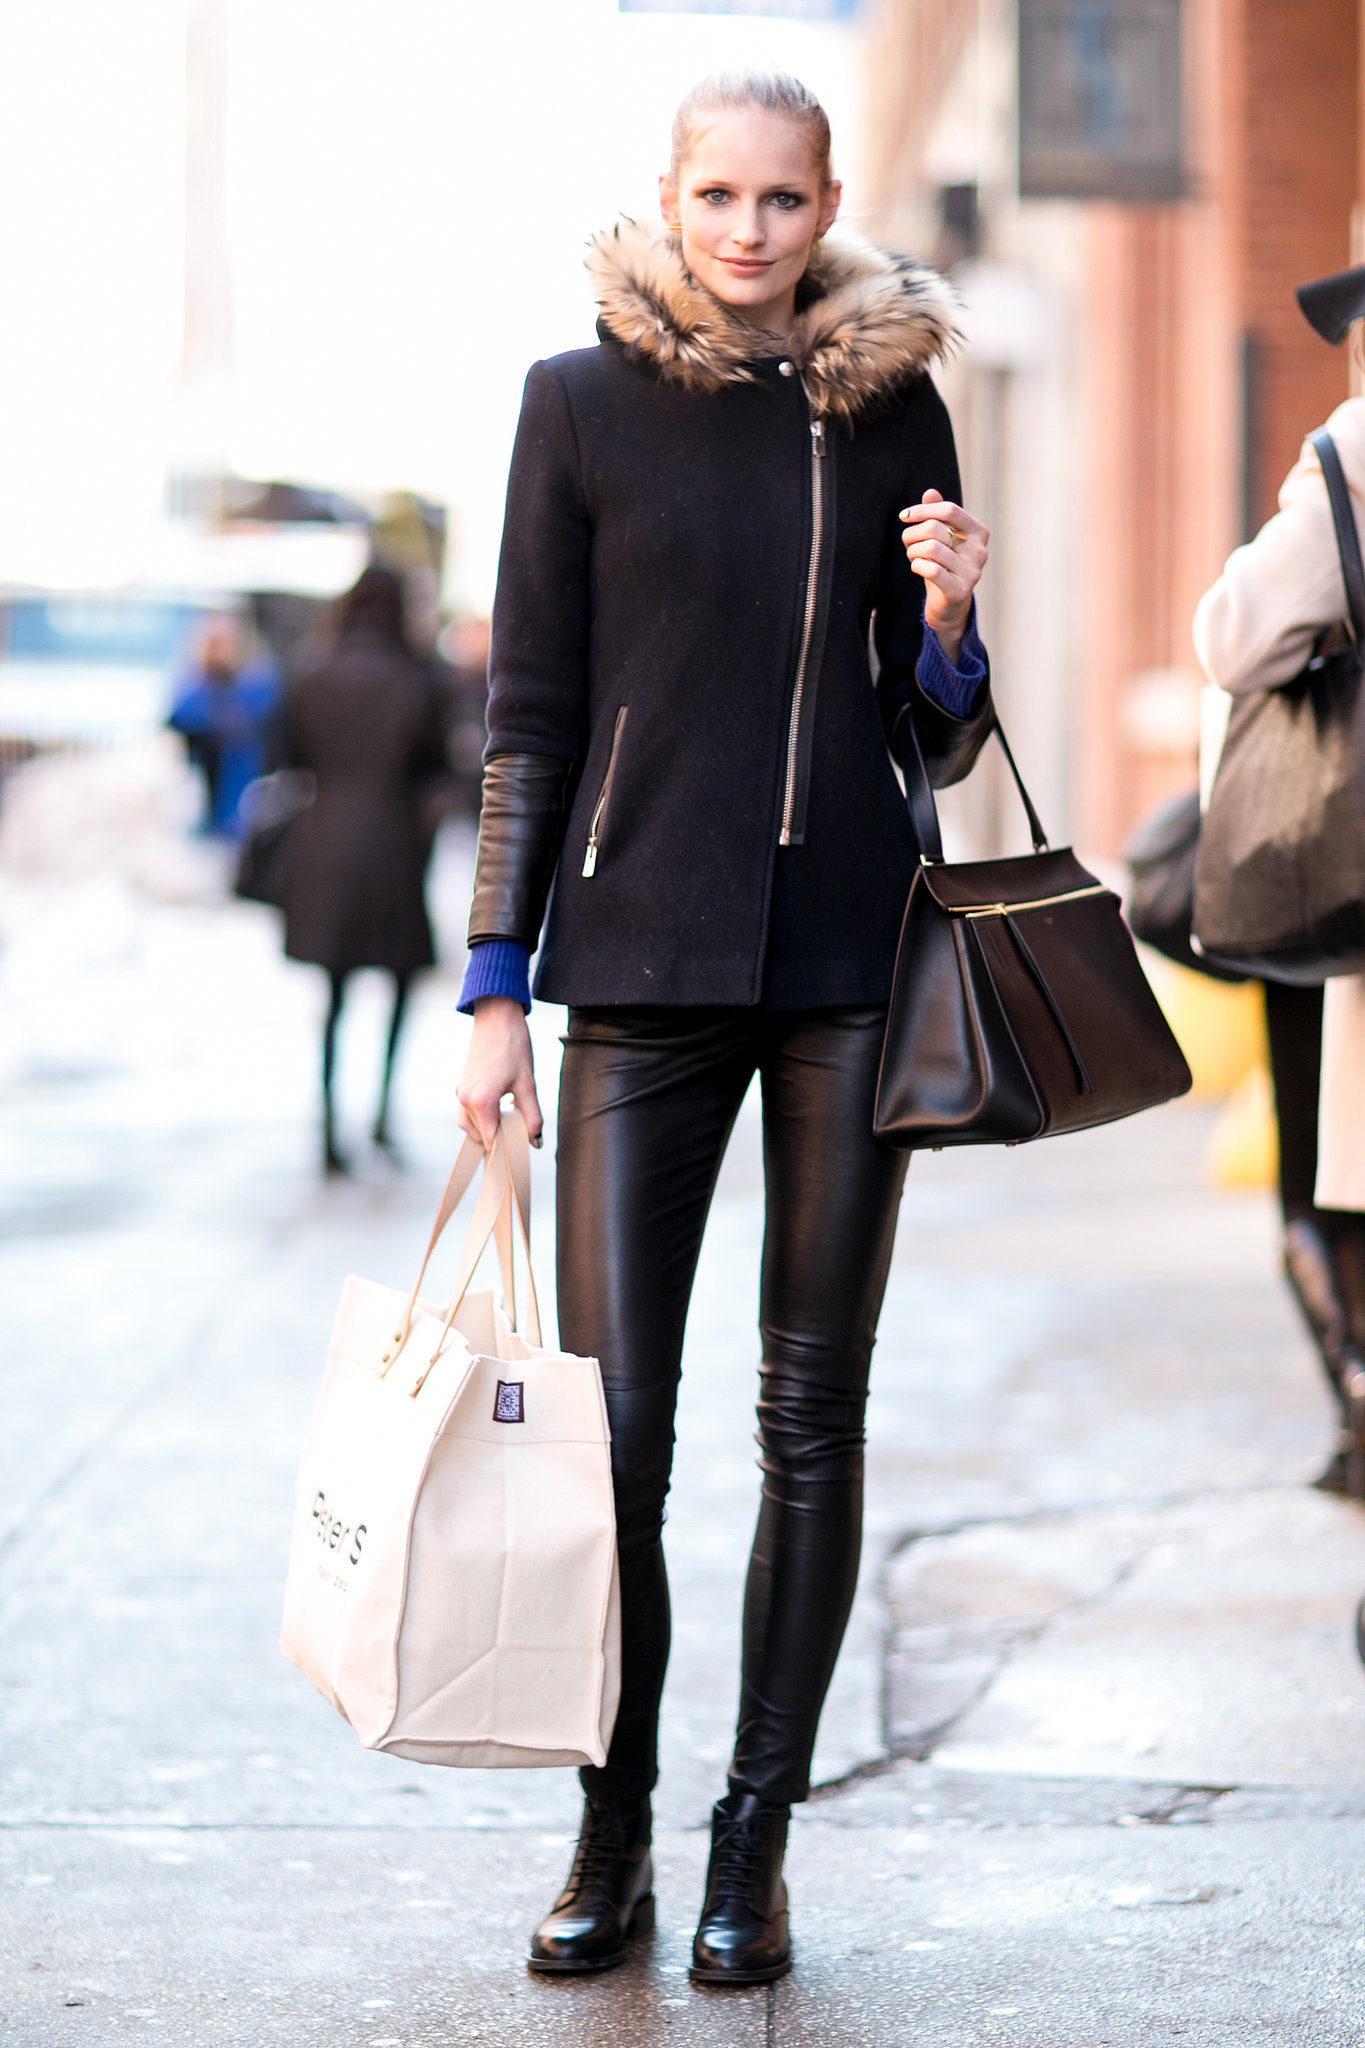 She stayed true to the model dress code with leather leggings and a | The NYFW Model Moments You ...